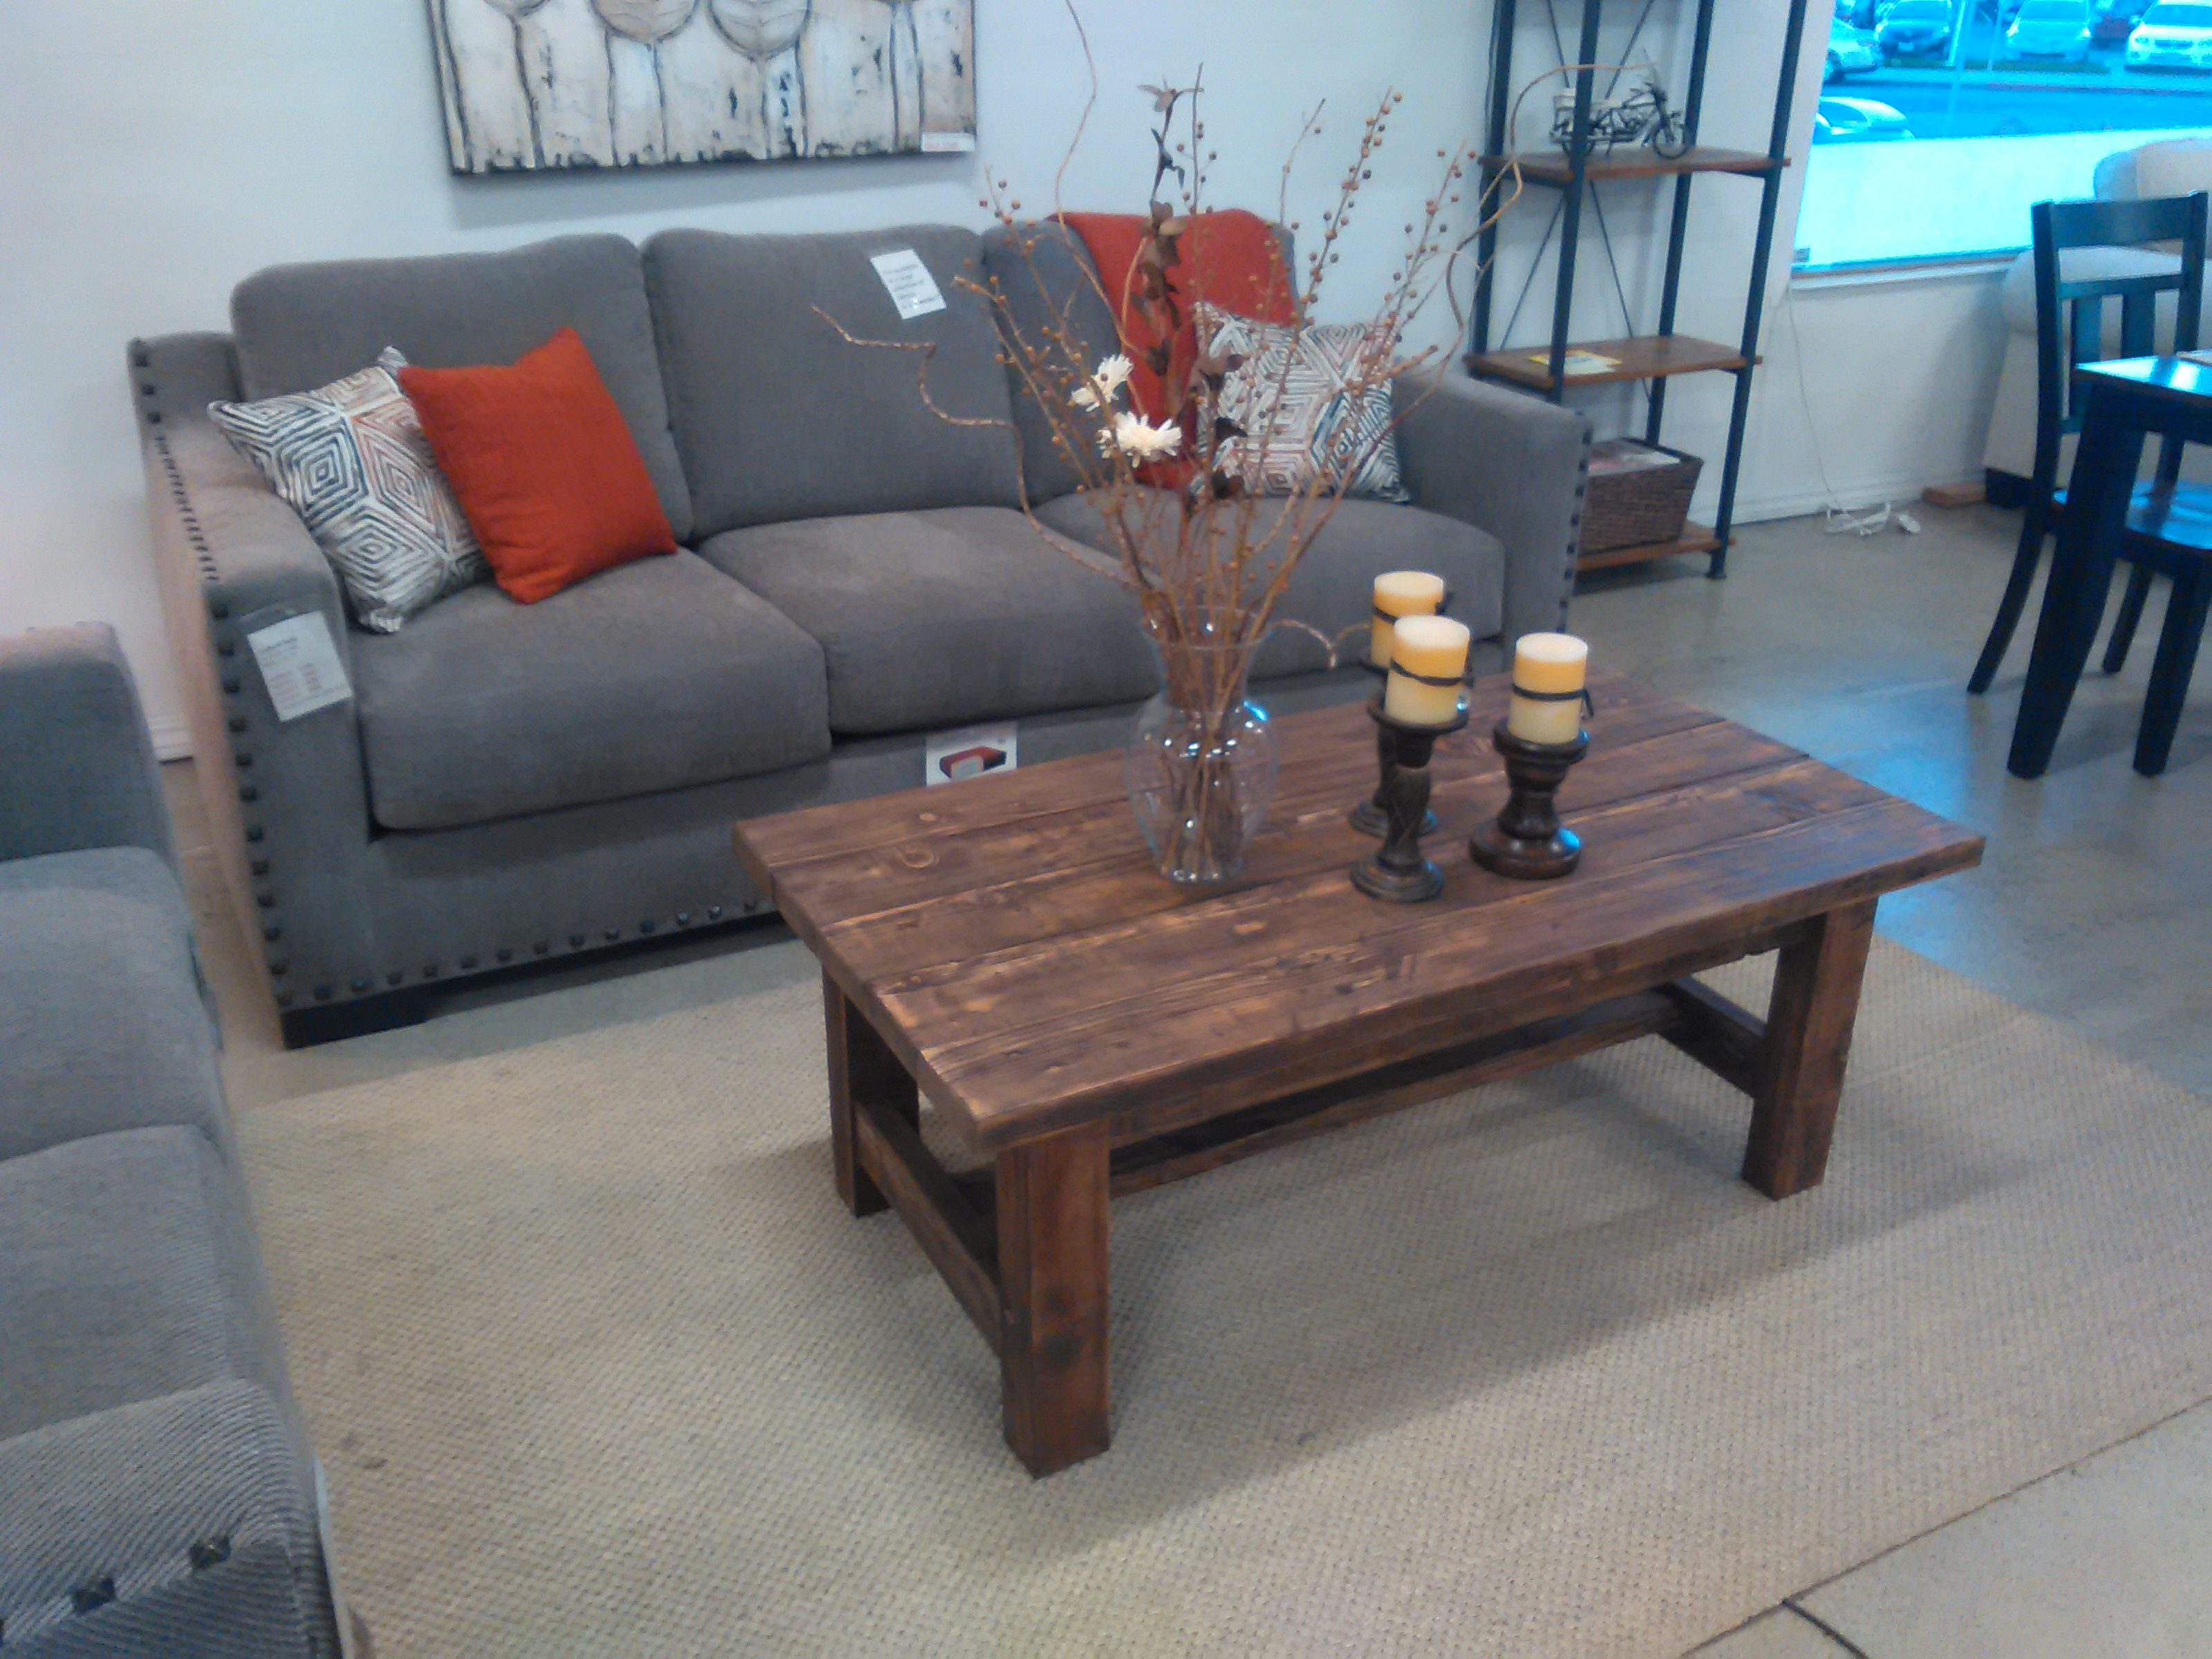 e of a kind reclaimed solid wood coffee table $349 – Furniture